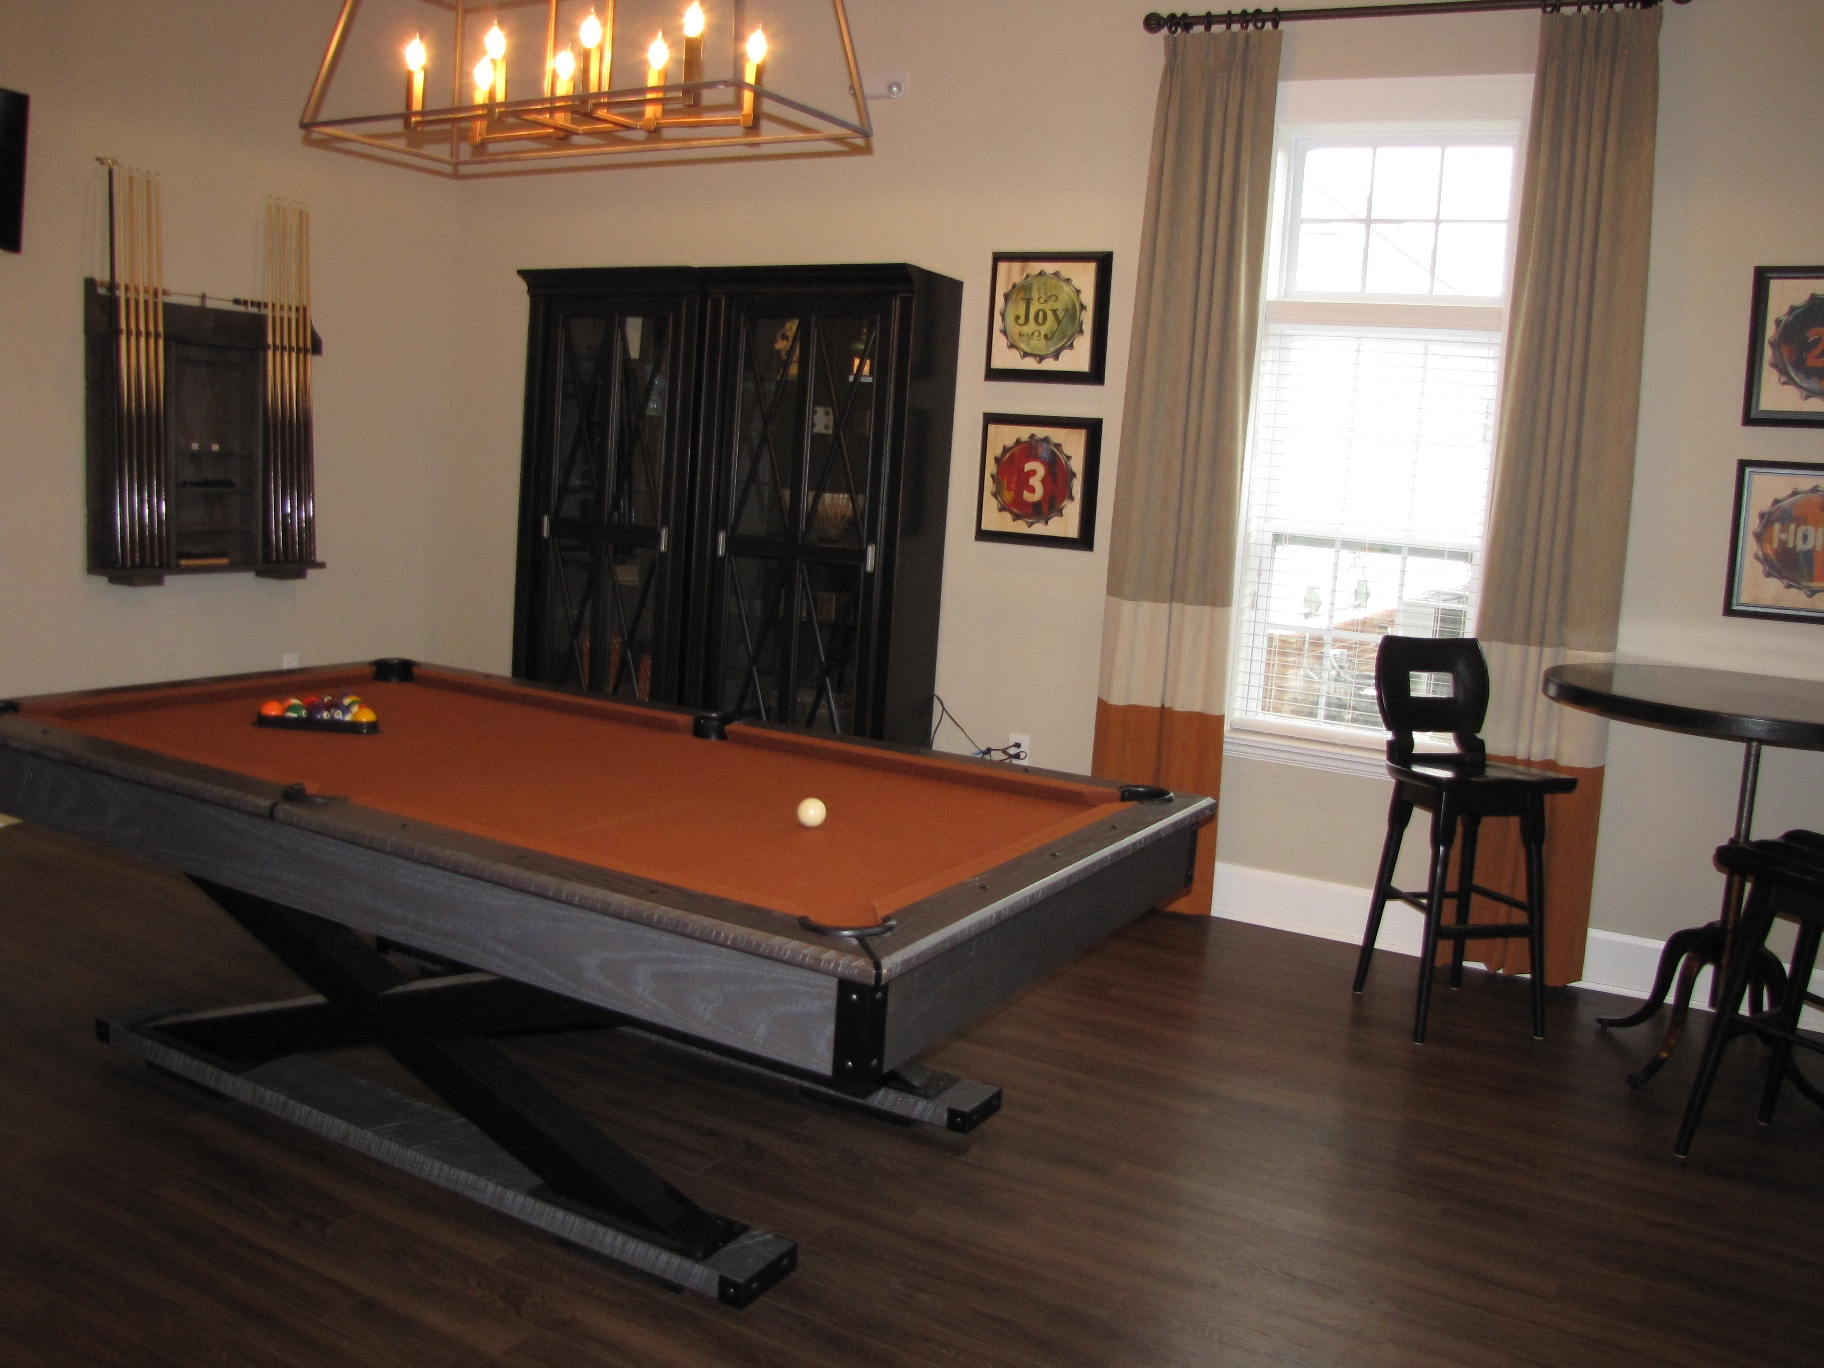 Billiards pool room